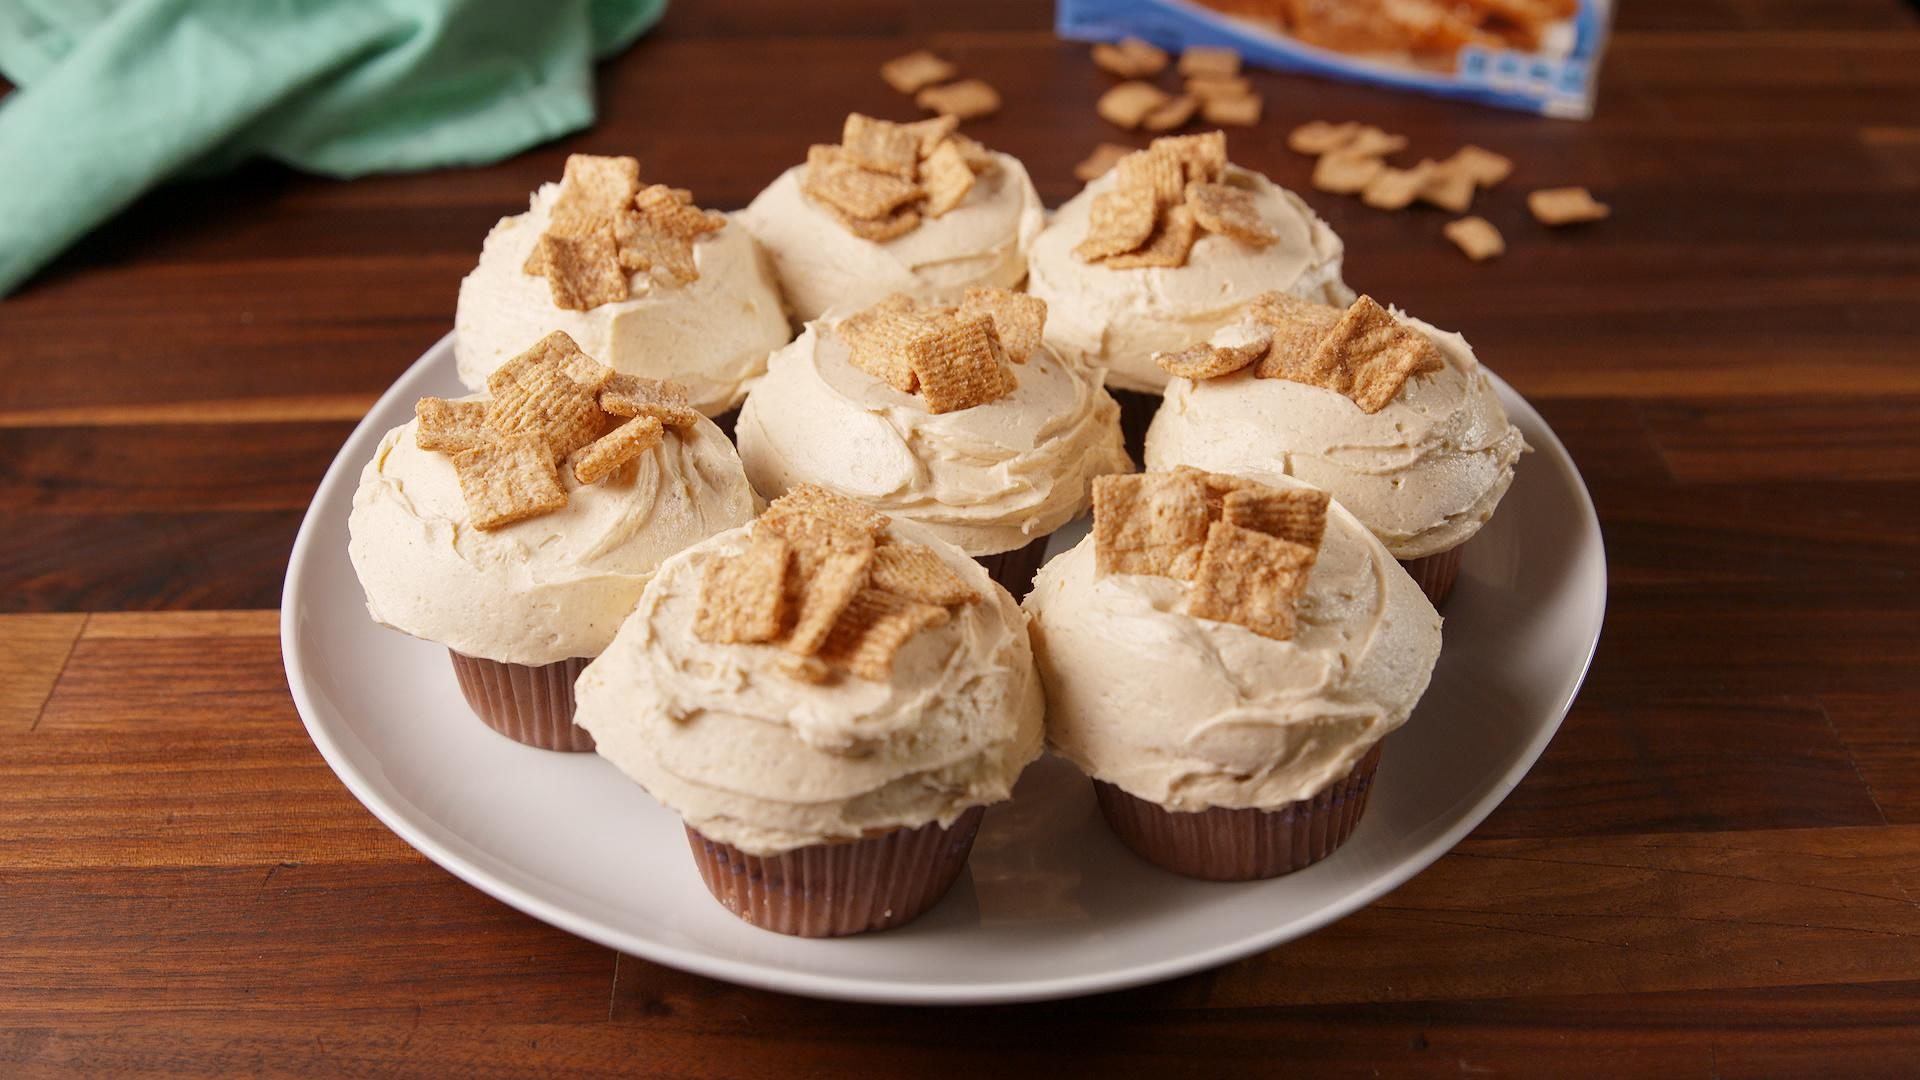 You Need to See the Inside of These Cinnamon Toast Crunch Cupcakes